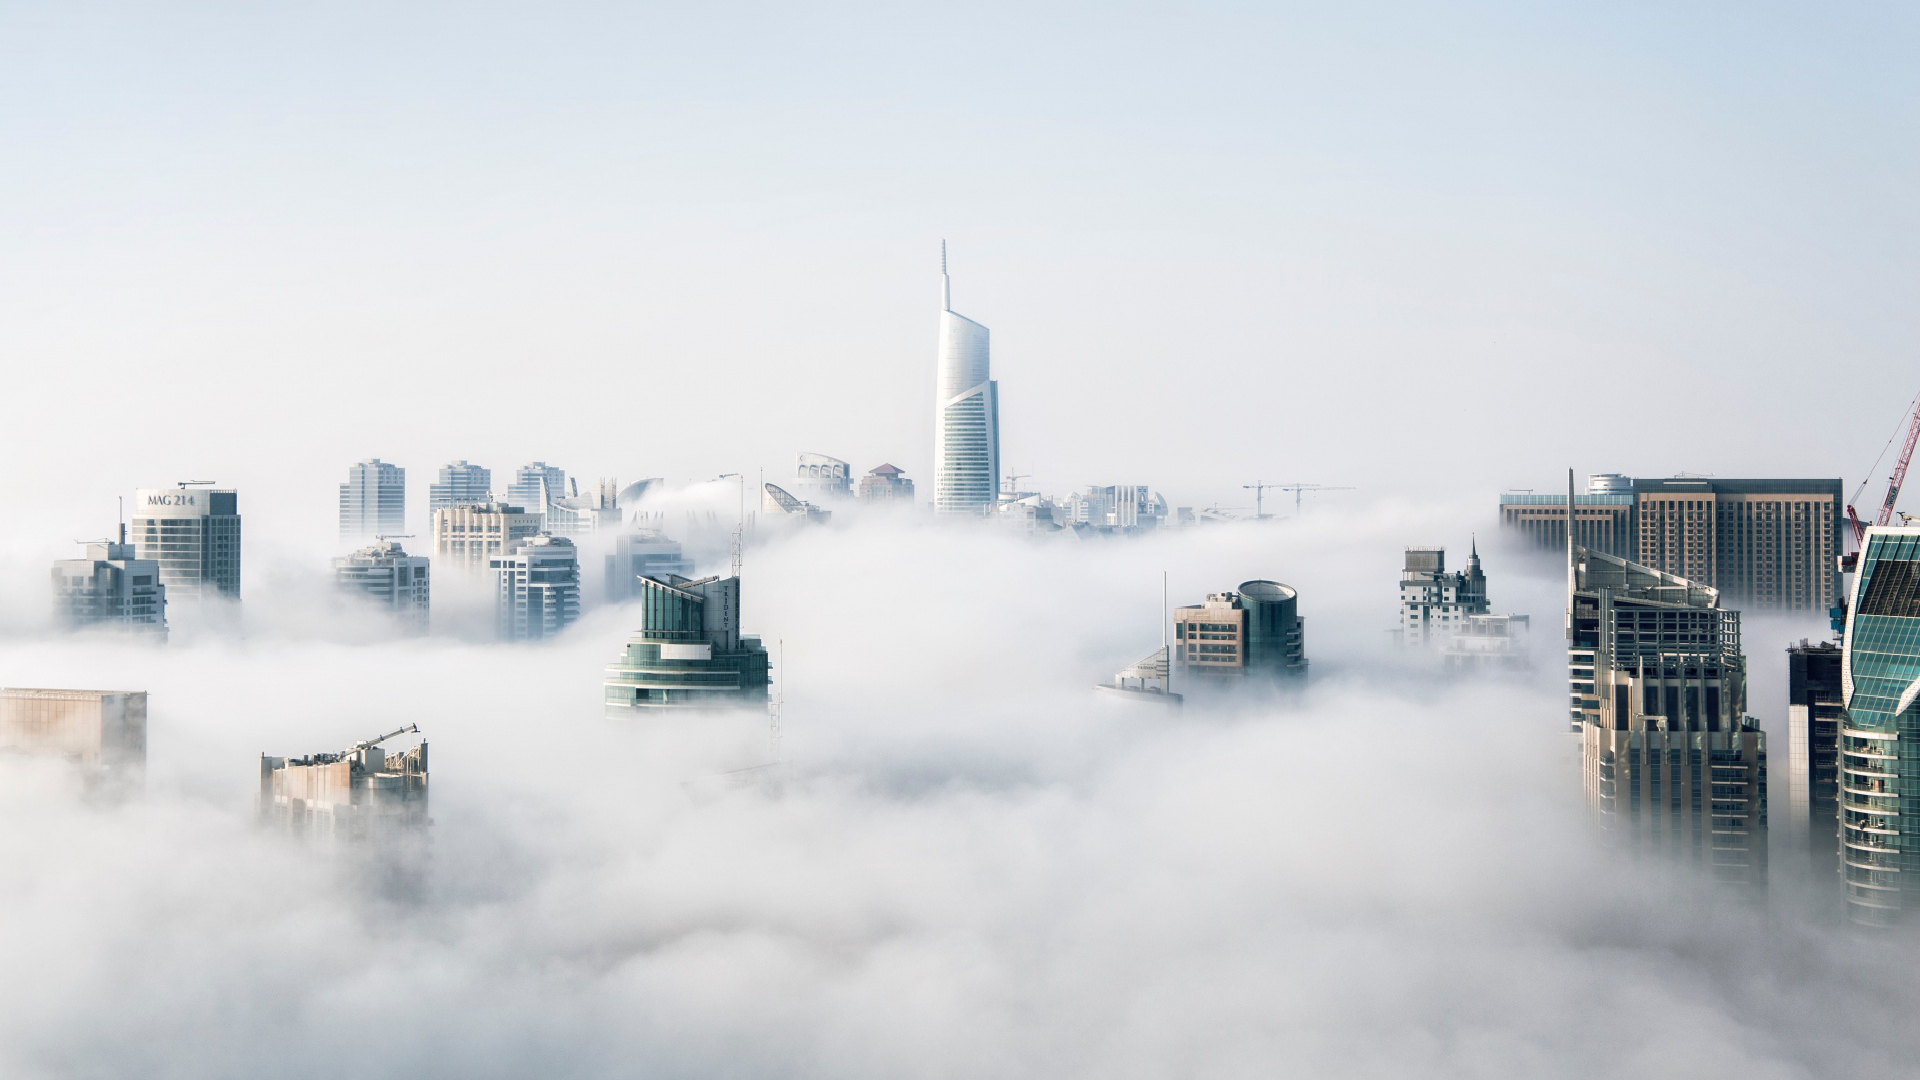 city,metropolis,clouds,skyscrapers,urban,modern,buildings,urban center,architecture